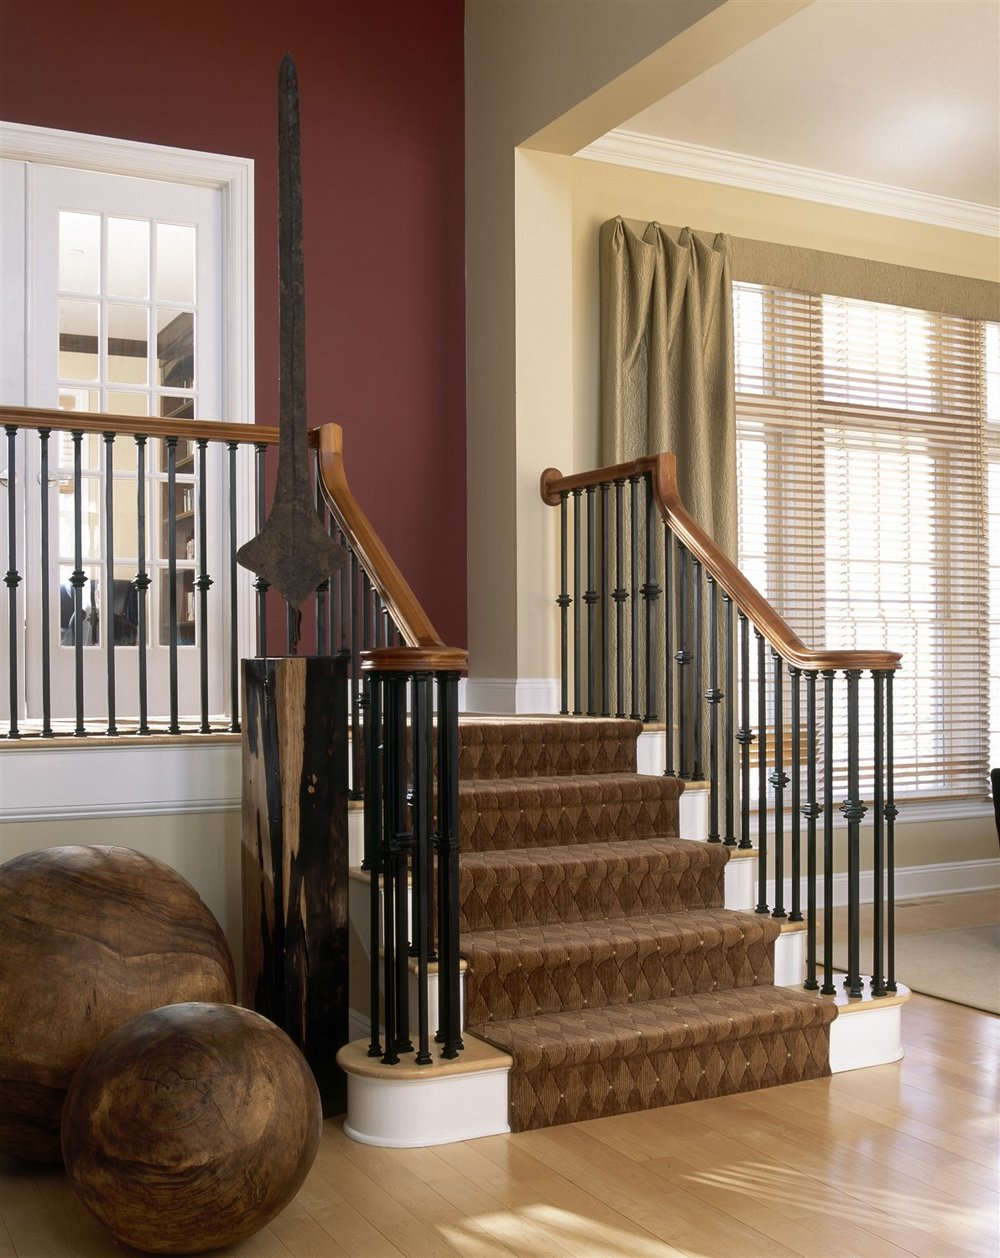 Staircase with metal railing